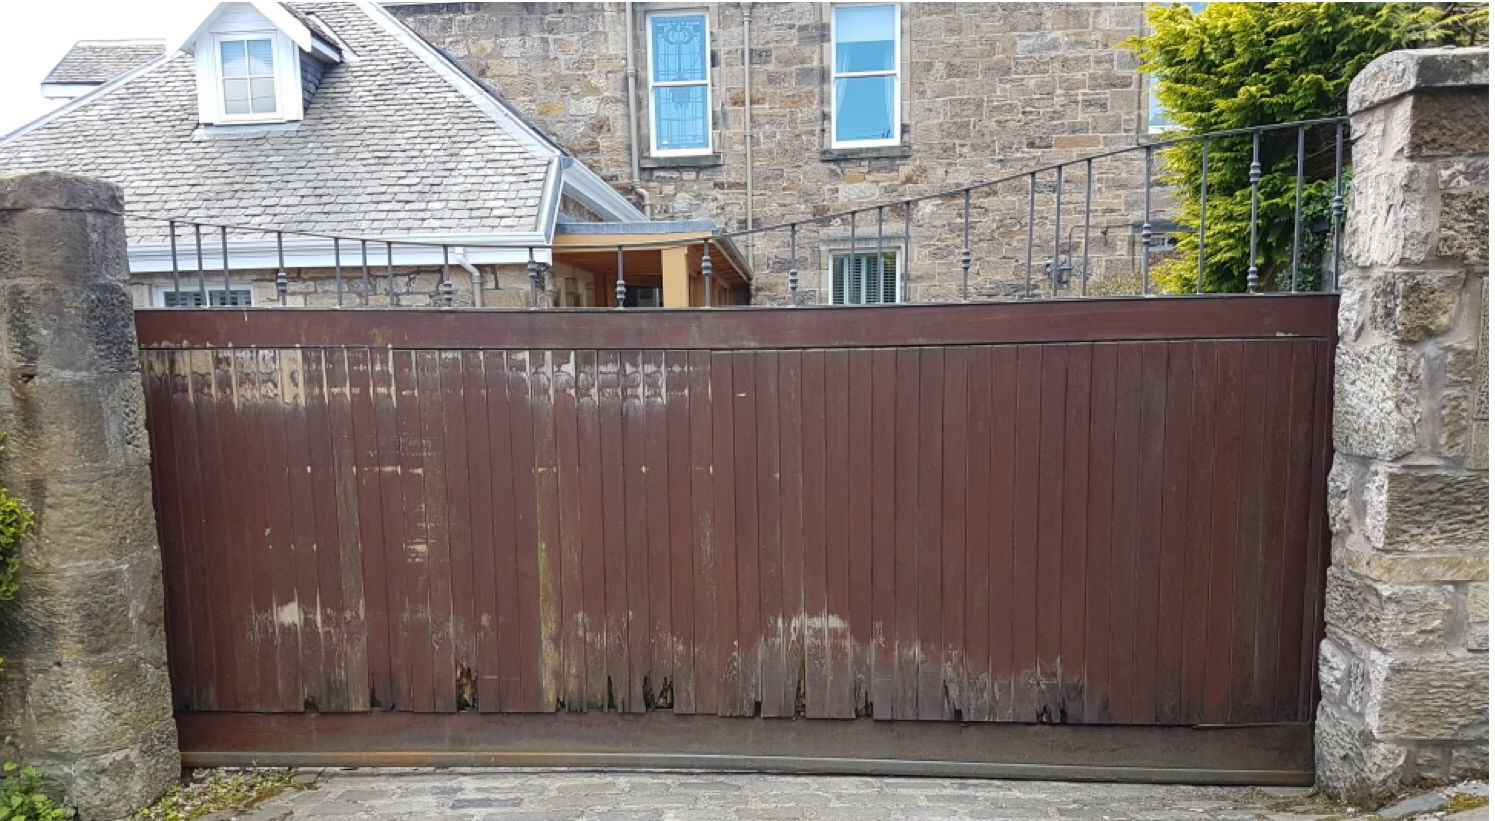 rotting wooden gate to be replaced with aluminium gate